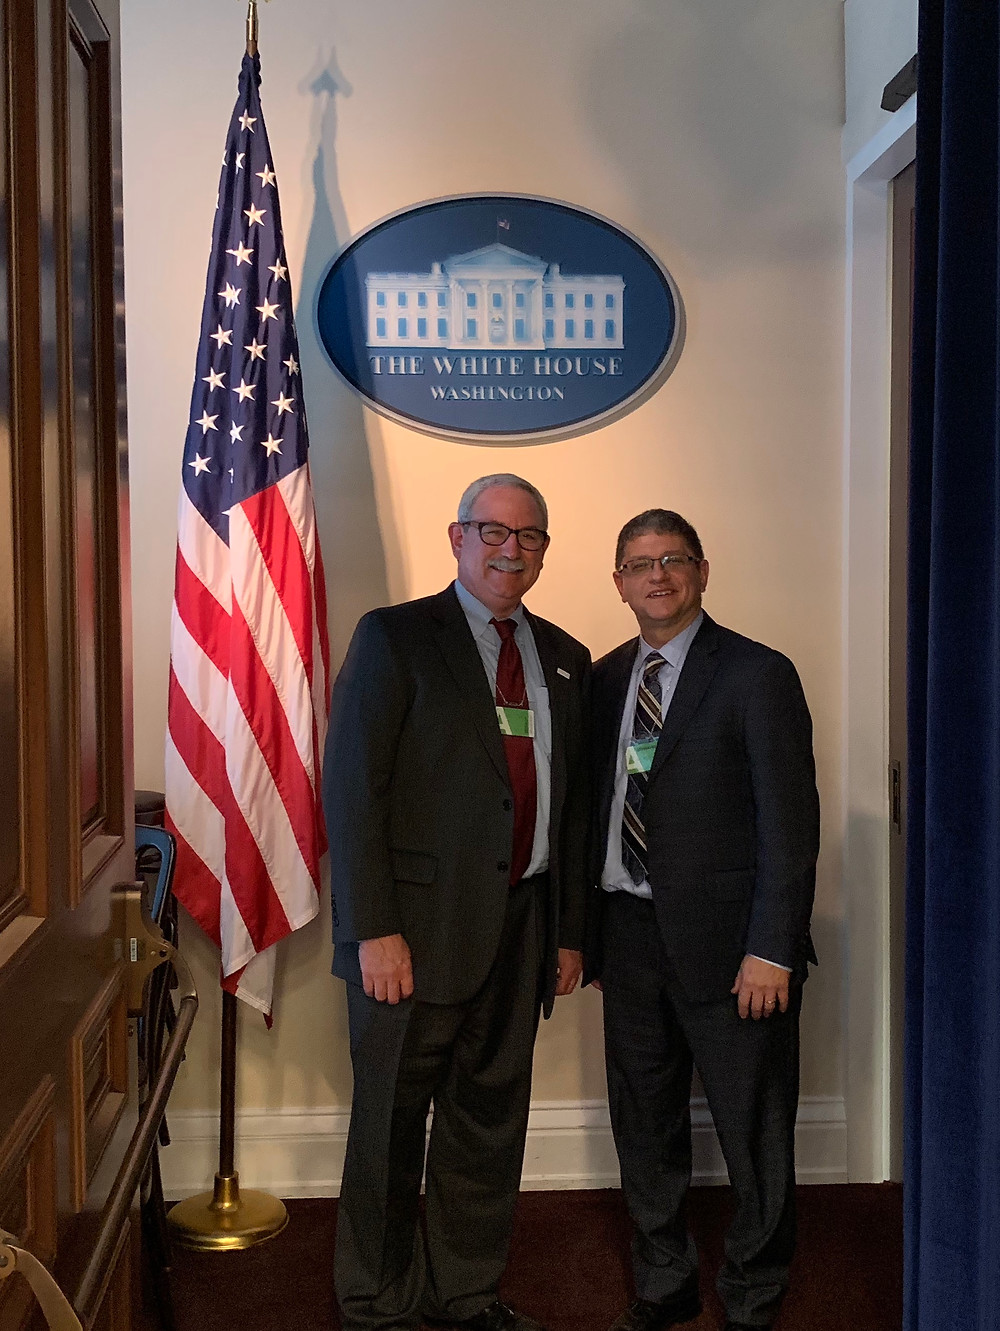 Dr. Micheal Koriwchak was invited the White House as a policy advisor